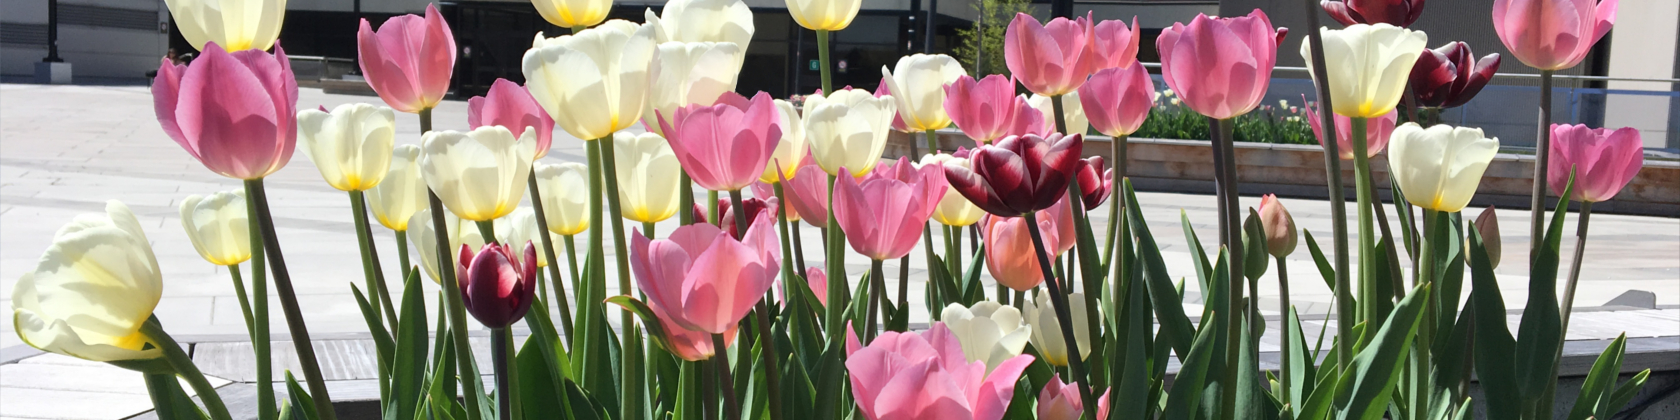 A close-up view of several tulips in bloom.